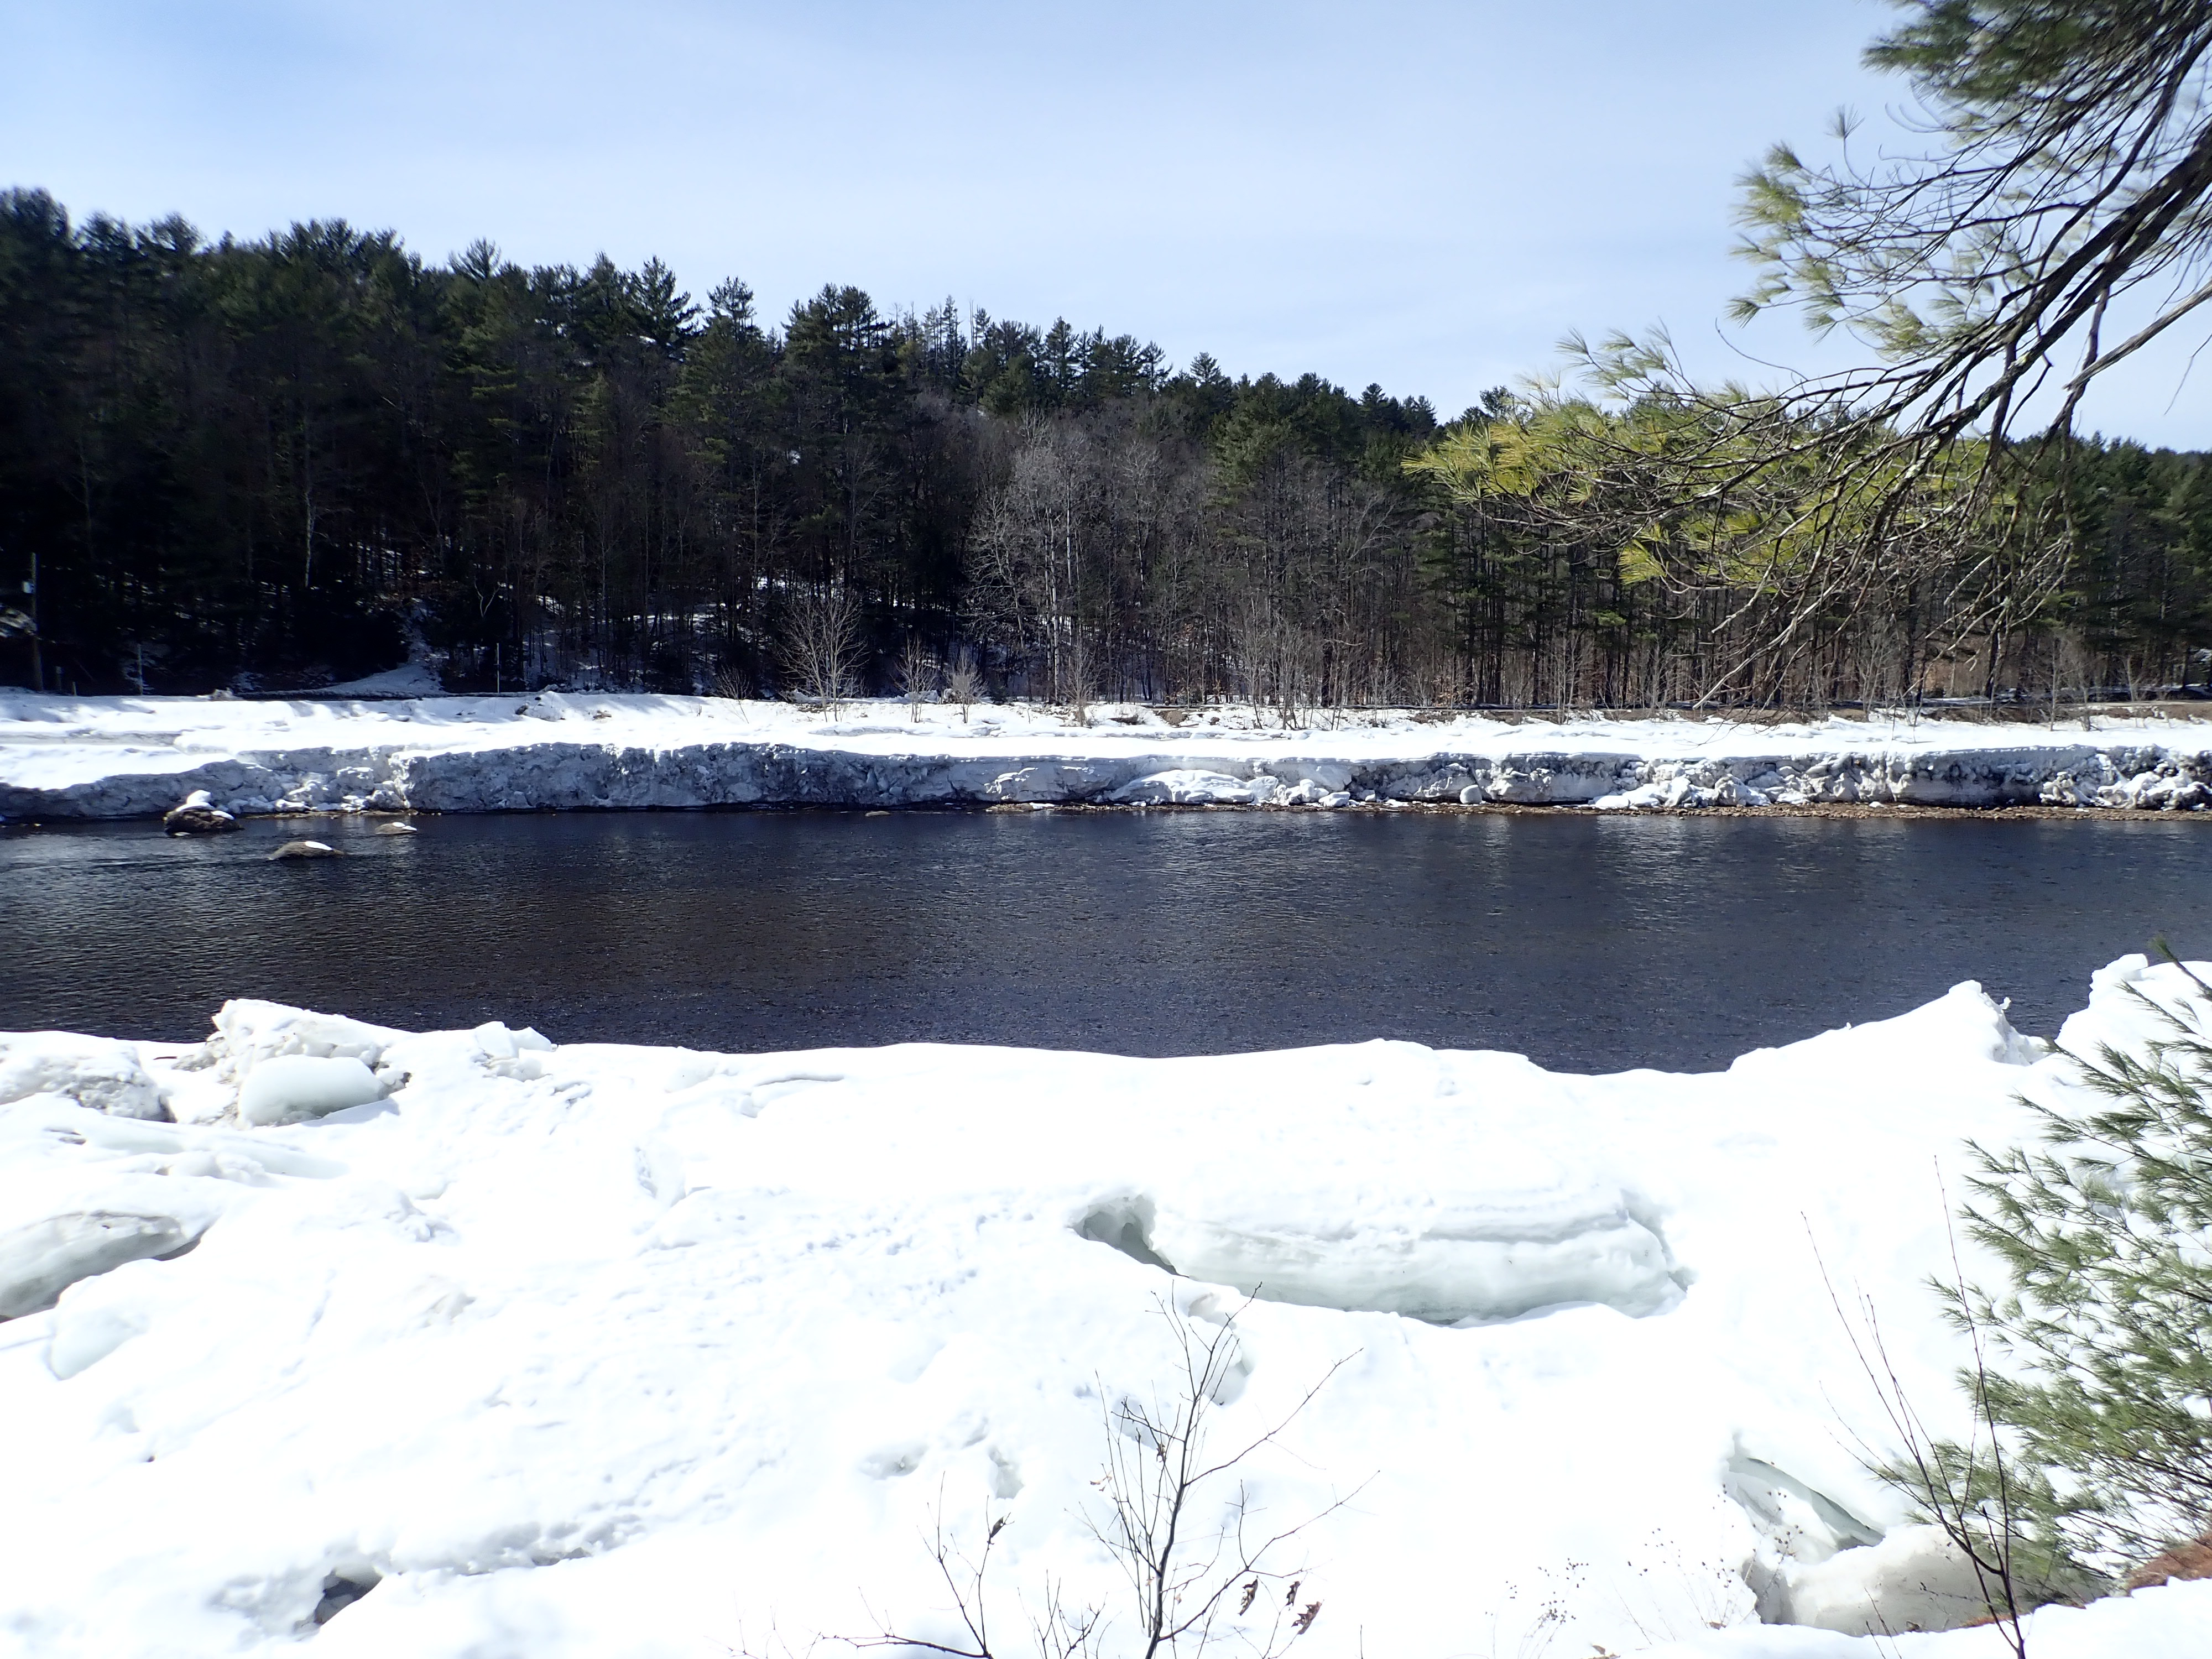 Open water on the Hudson River in winter from the Warren County Nature Trails